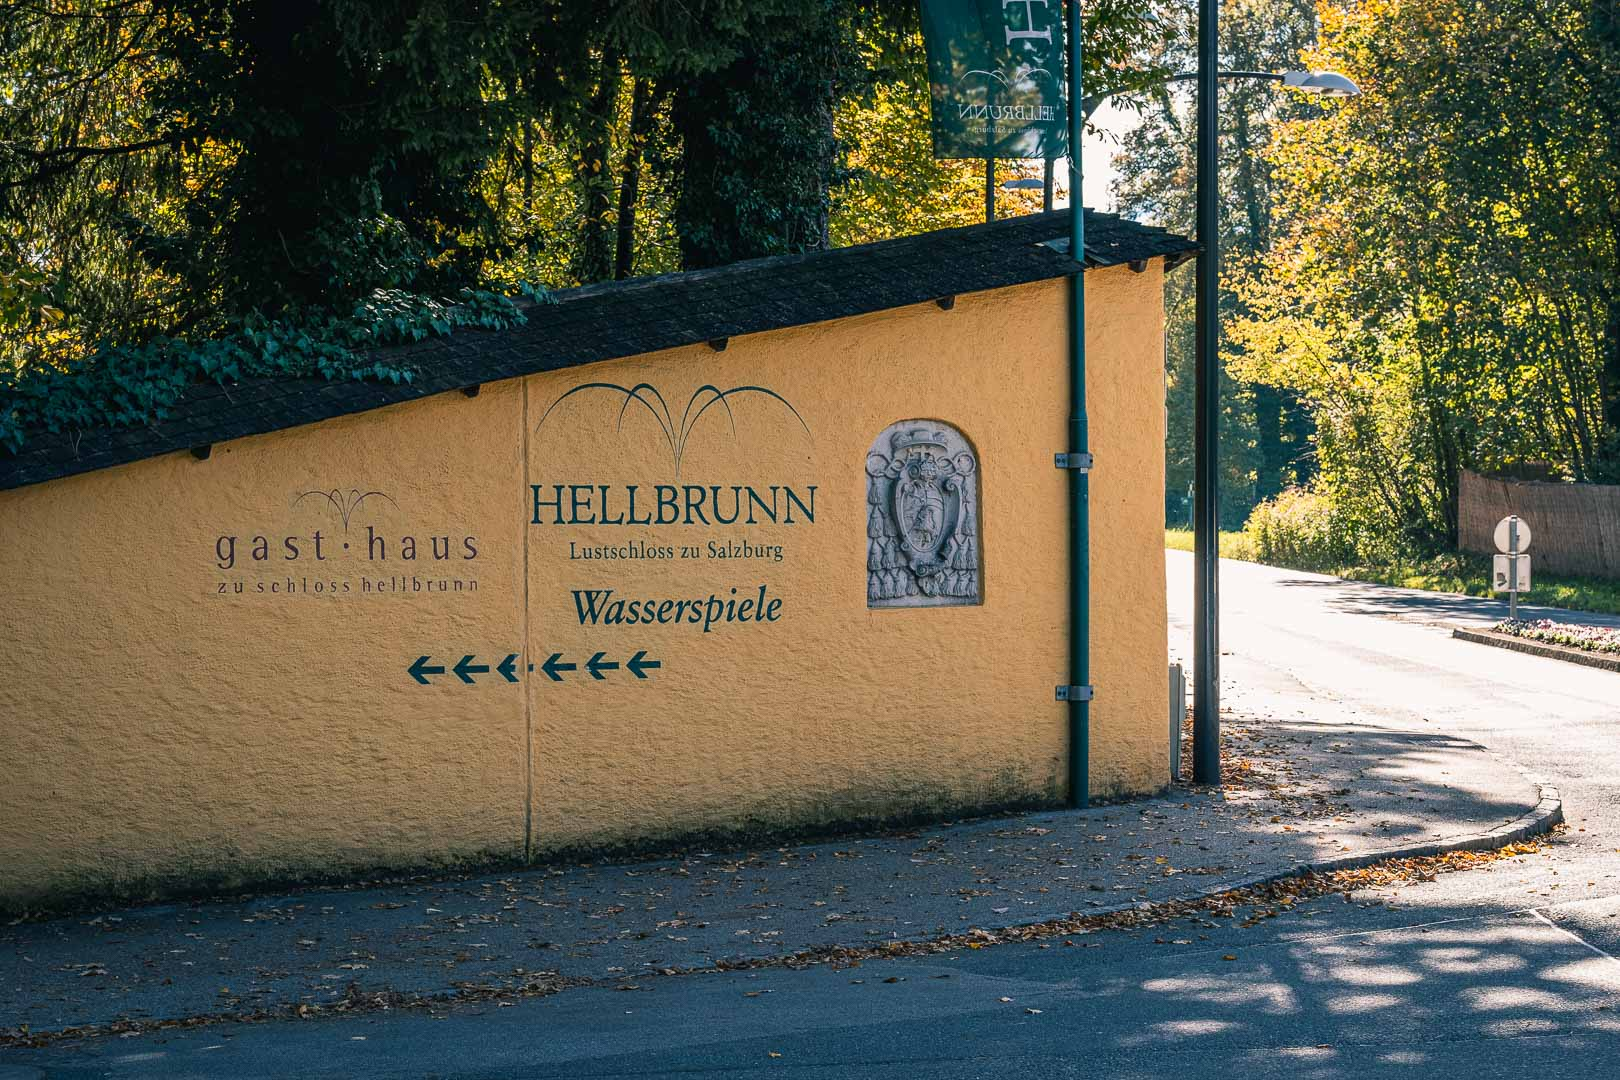 The way to Hellbrunn from the bus stop of number 25